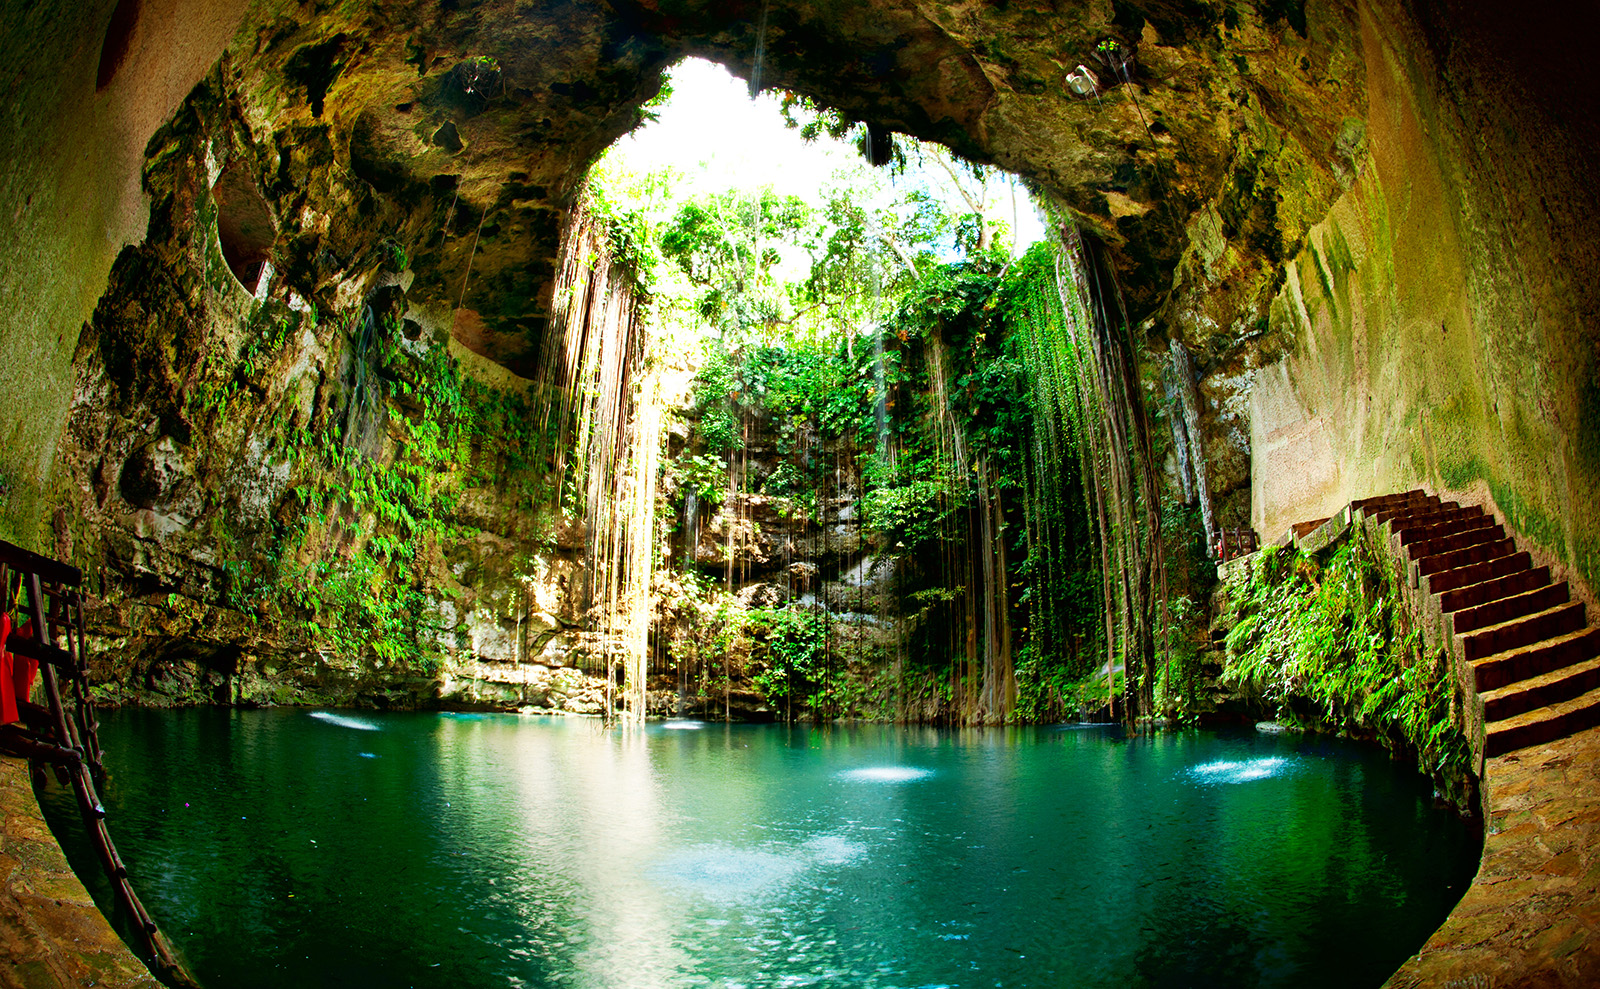 blue water in a cave with vines in Ik-Kil Cenote, Chichen Itza, Mexico